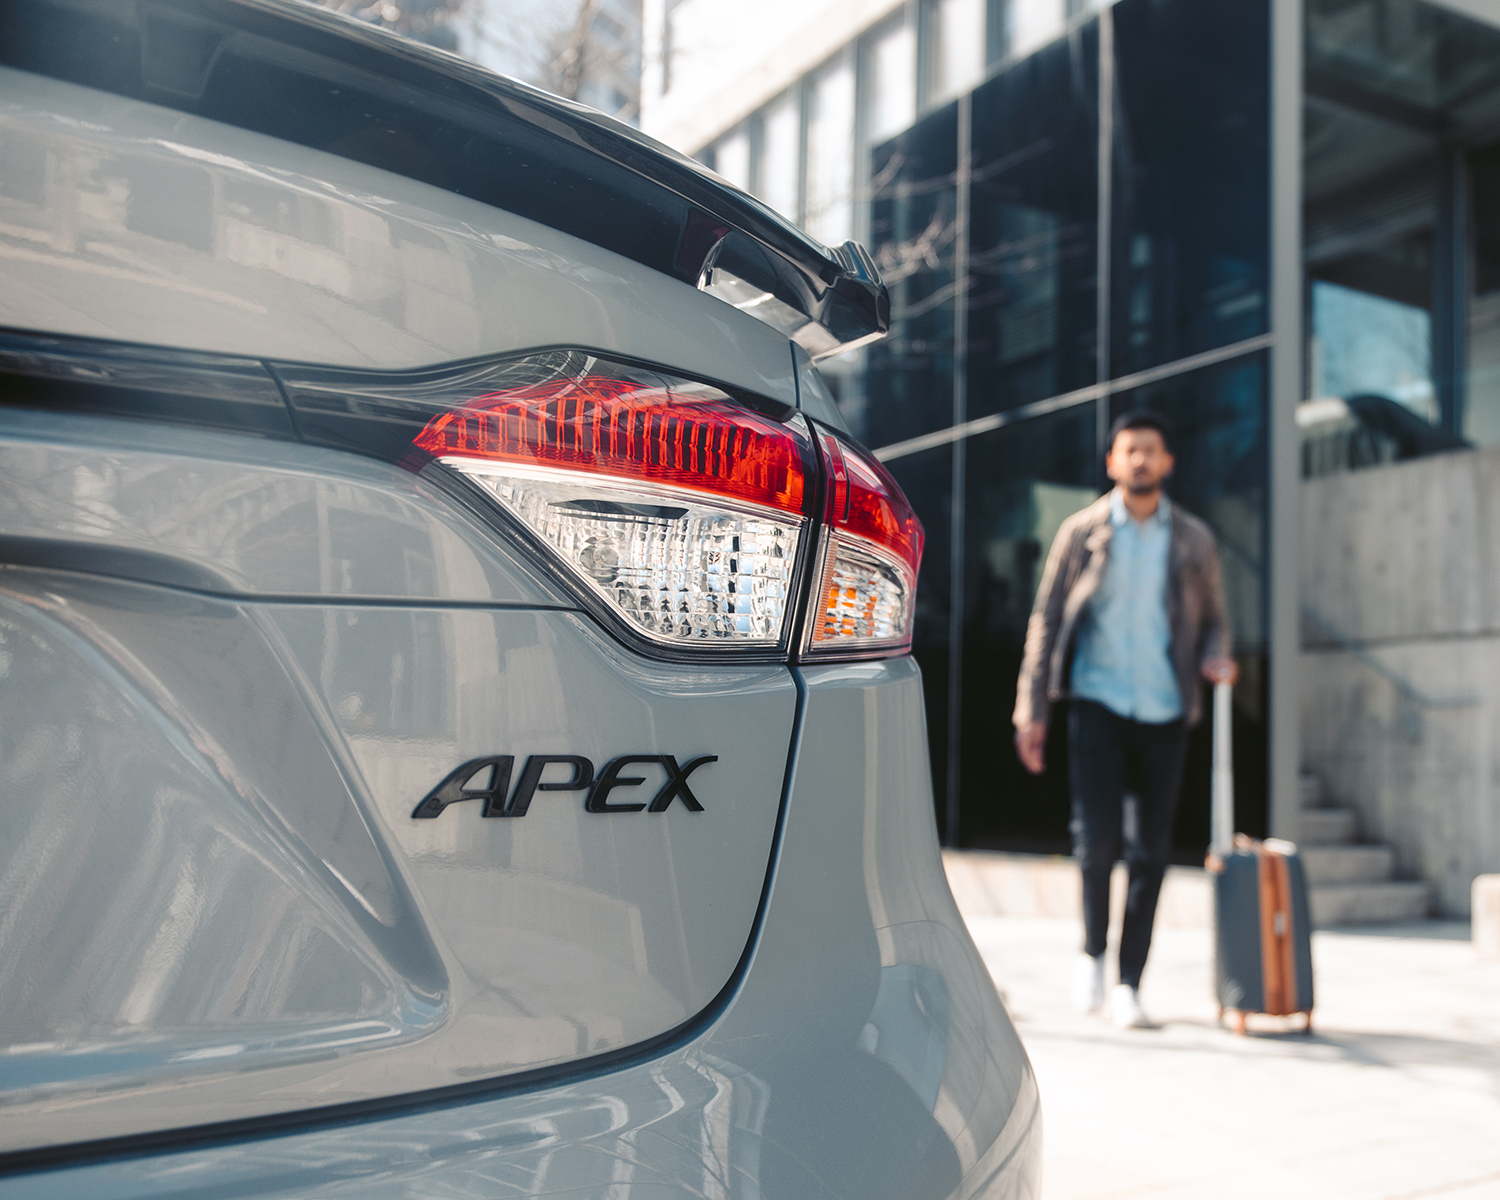 Corolla SE CVT Apex Edition shown in Cement Grey with Black Roof